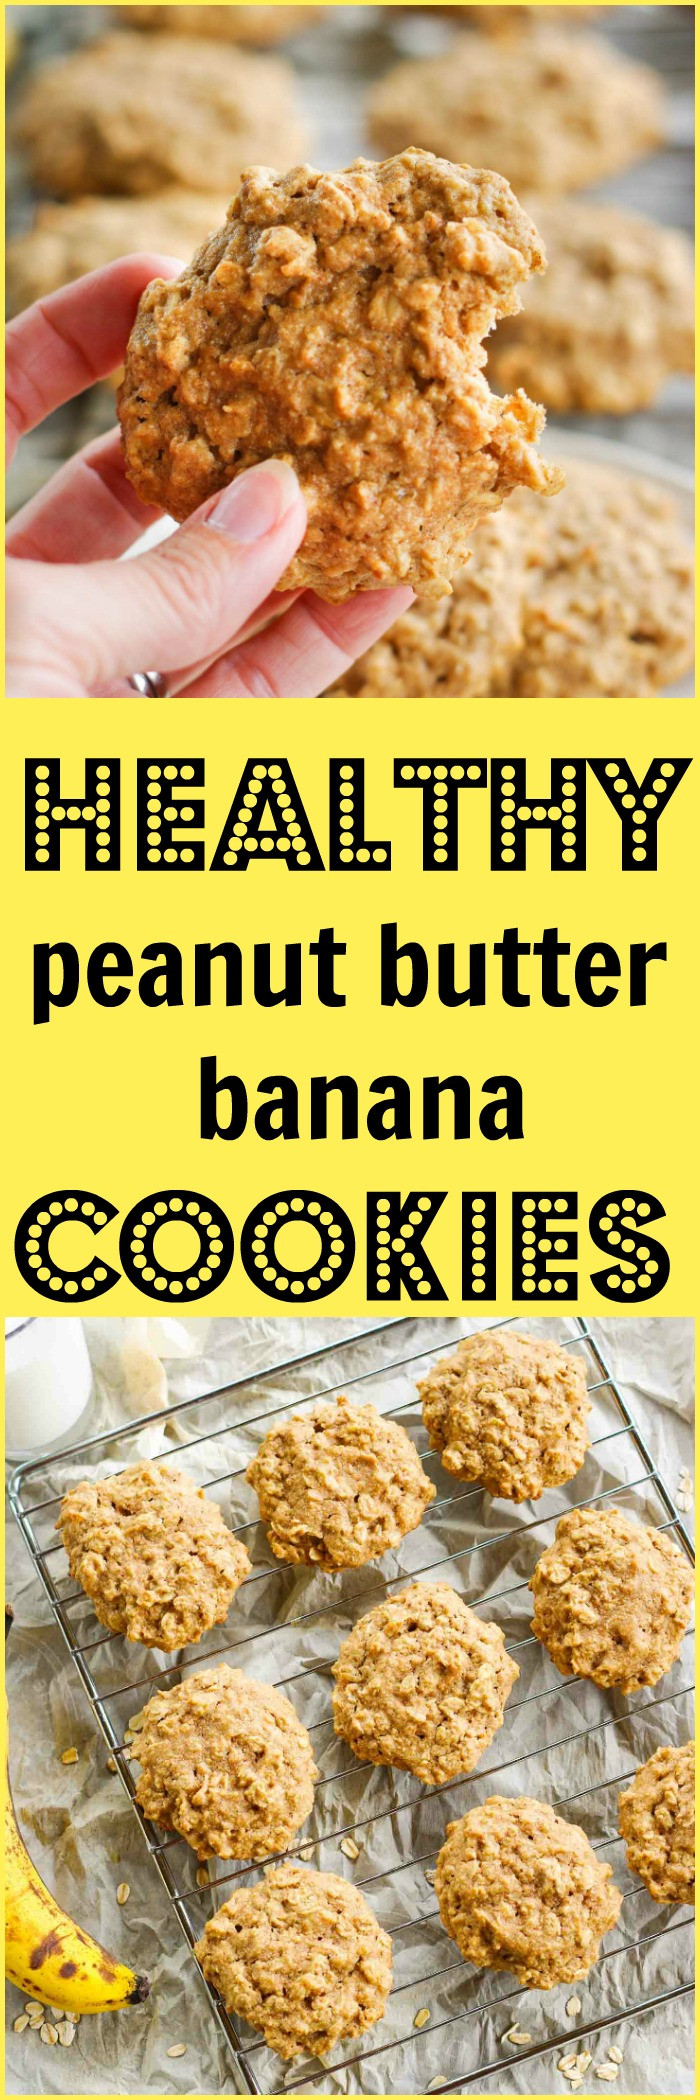 Healthy Banana Peanut Butter Cookies  Healthy Peanut Butter Banana Cookies – Dan330